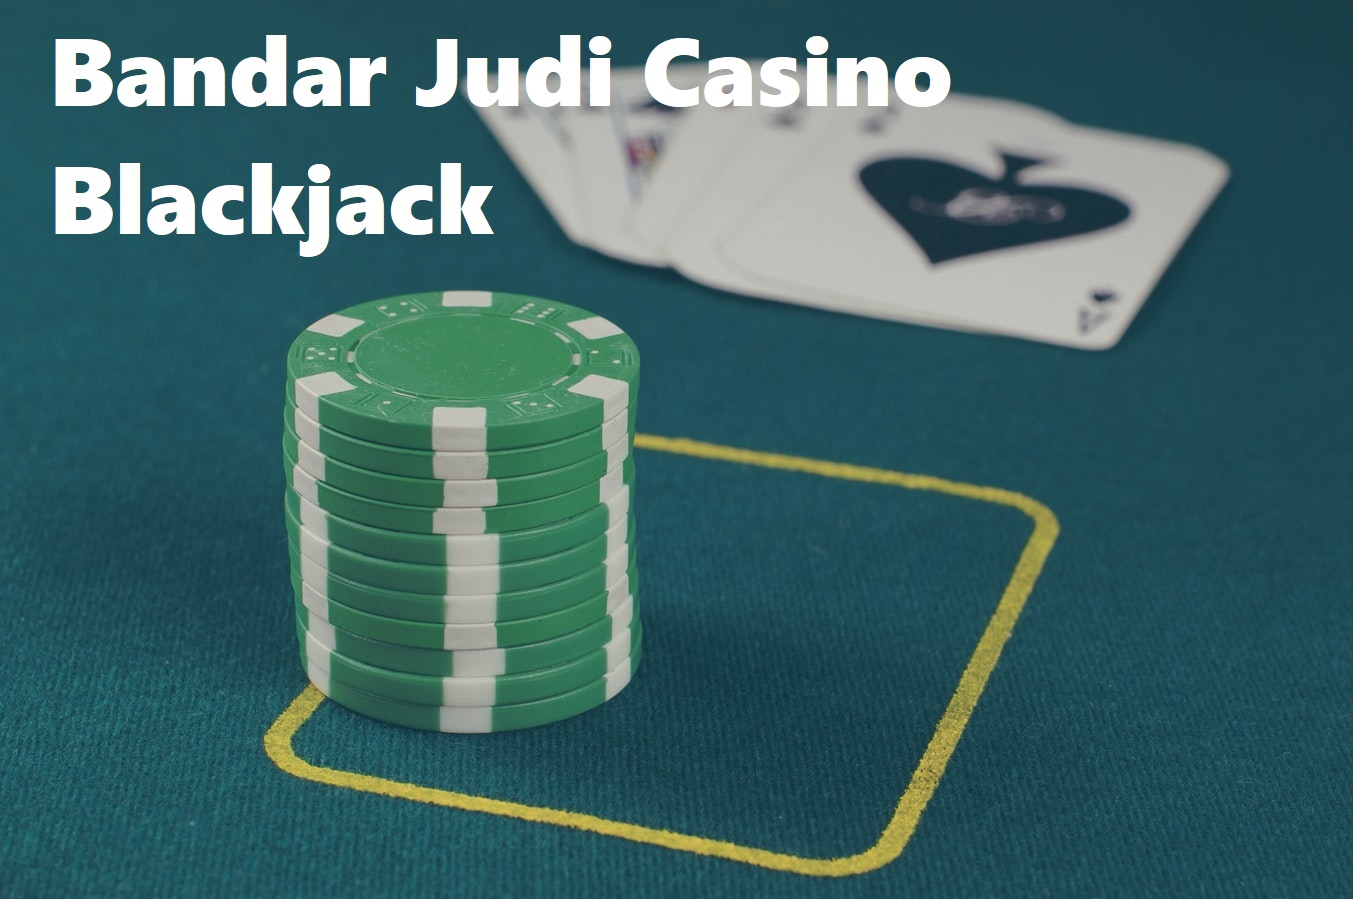 Bandar Judi Casino Blackjack